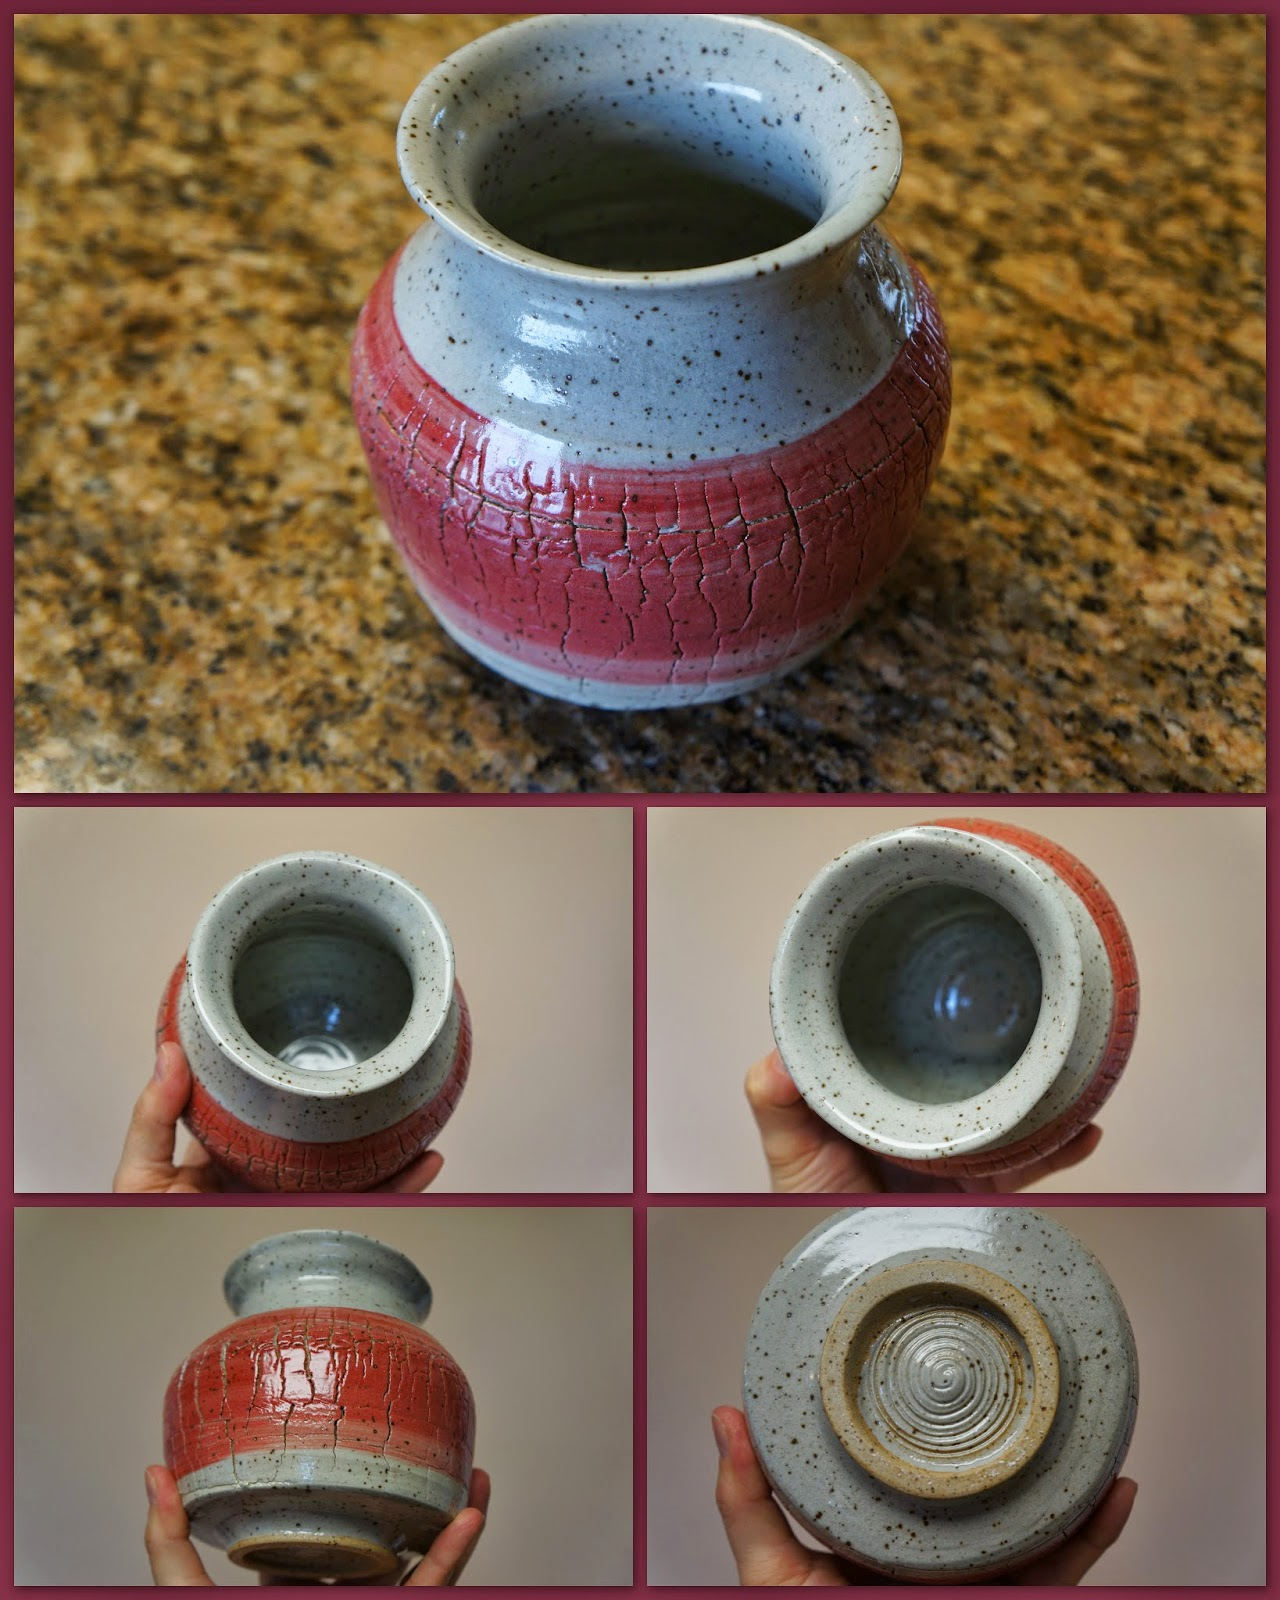 Sodium silicate crackled ceramic / pottery vase in pink/red/white tones.